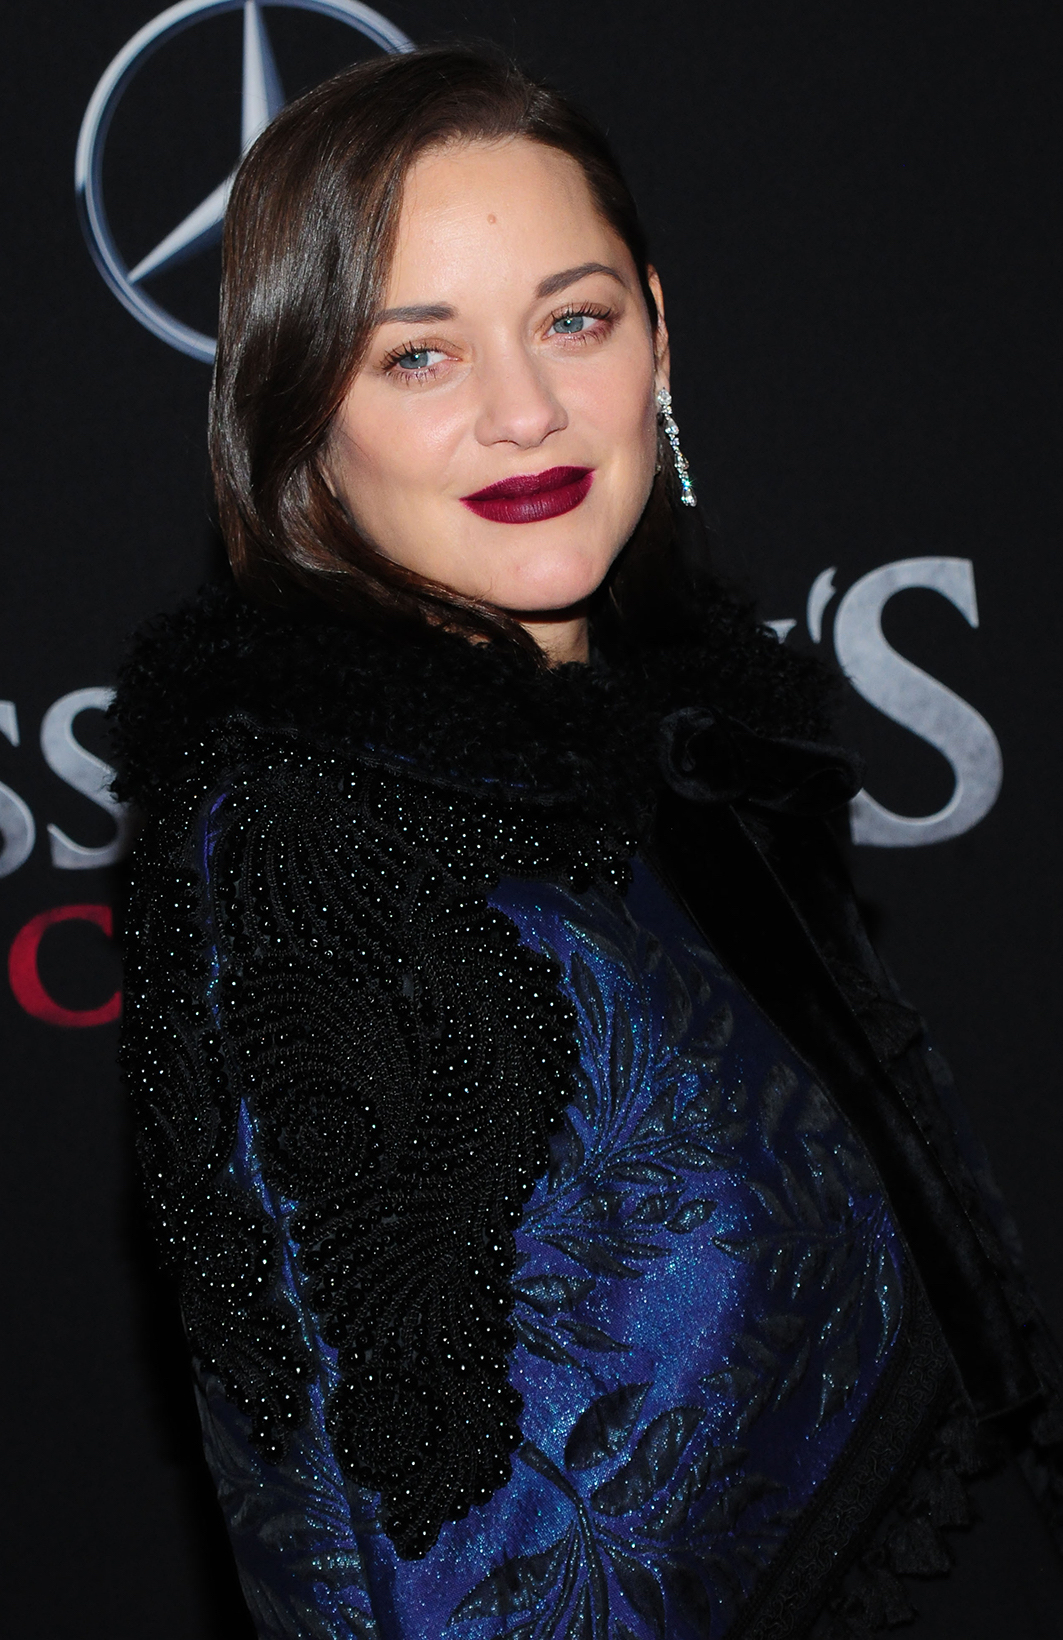 Marion Cotillard Assassin S Creed Wiki Fandom